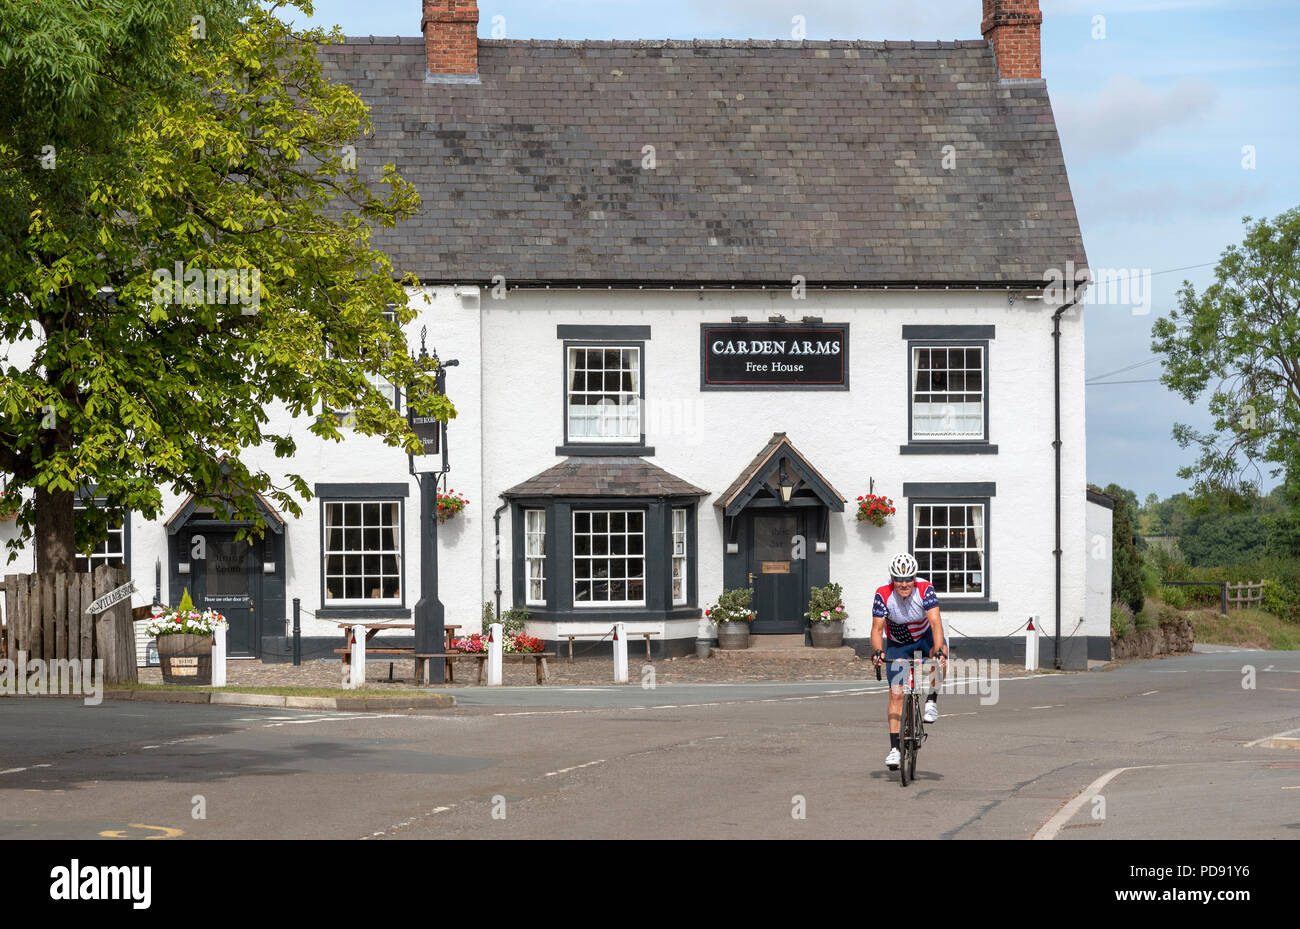 Carden Arms a 16th Century coaching Inn at Tilson, Malpas, Cheshire, England, UK. Exterior view with a cyclist passing by, - Stock Image